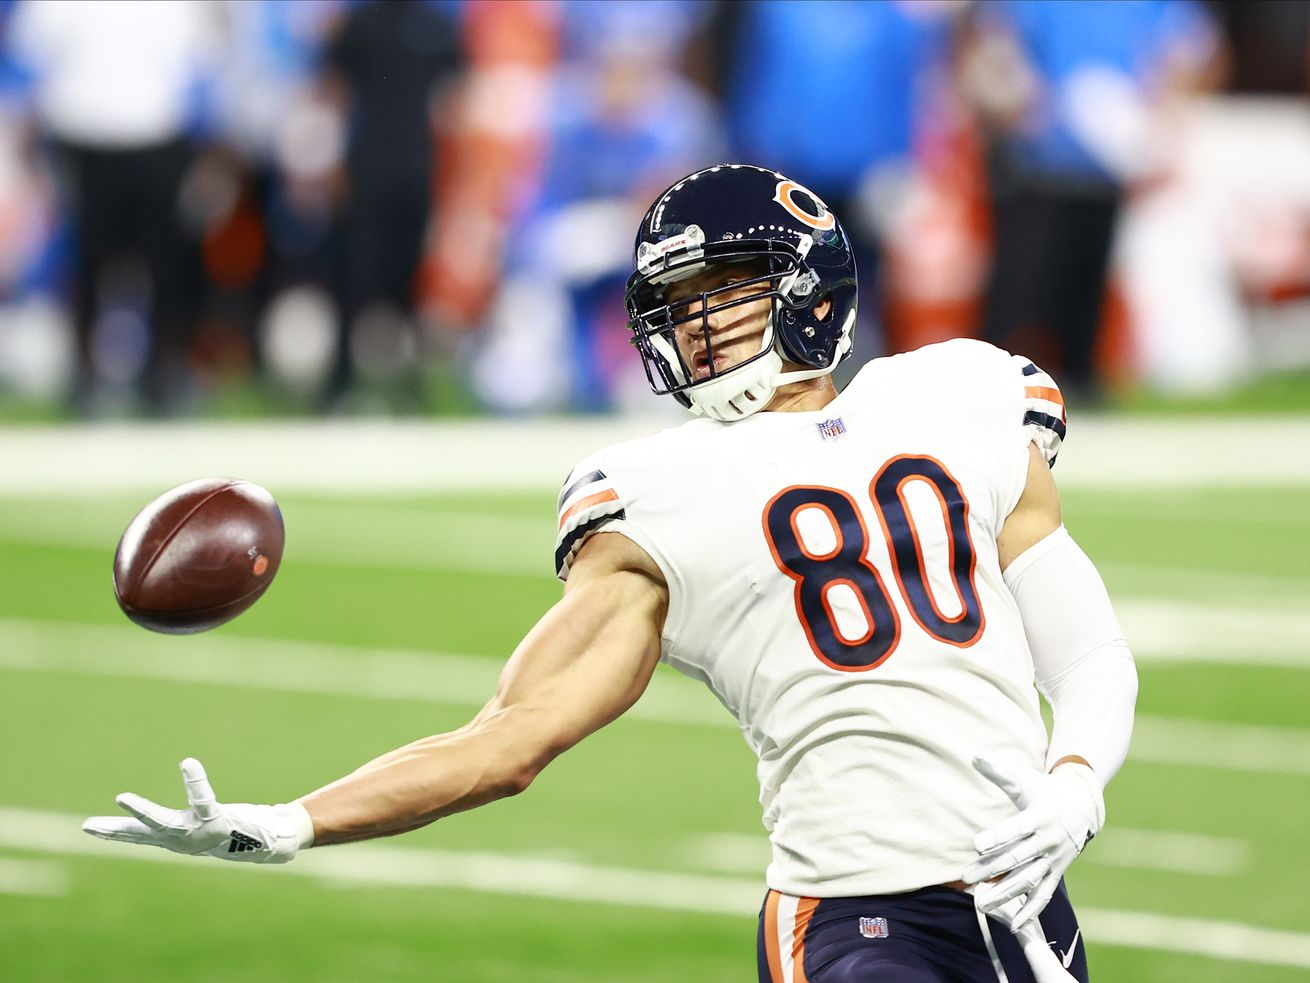 Bears TE Jimmy Graham: 'I guarantee' I'll make more plays